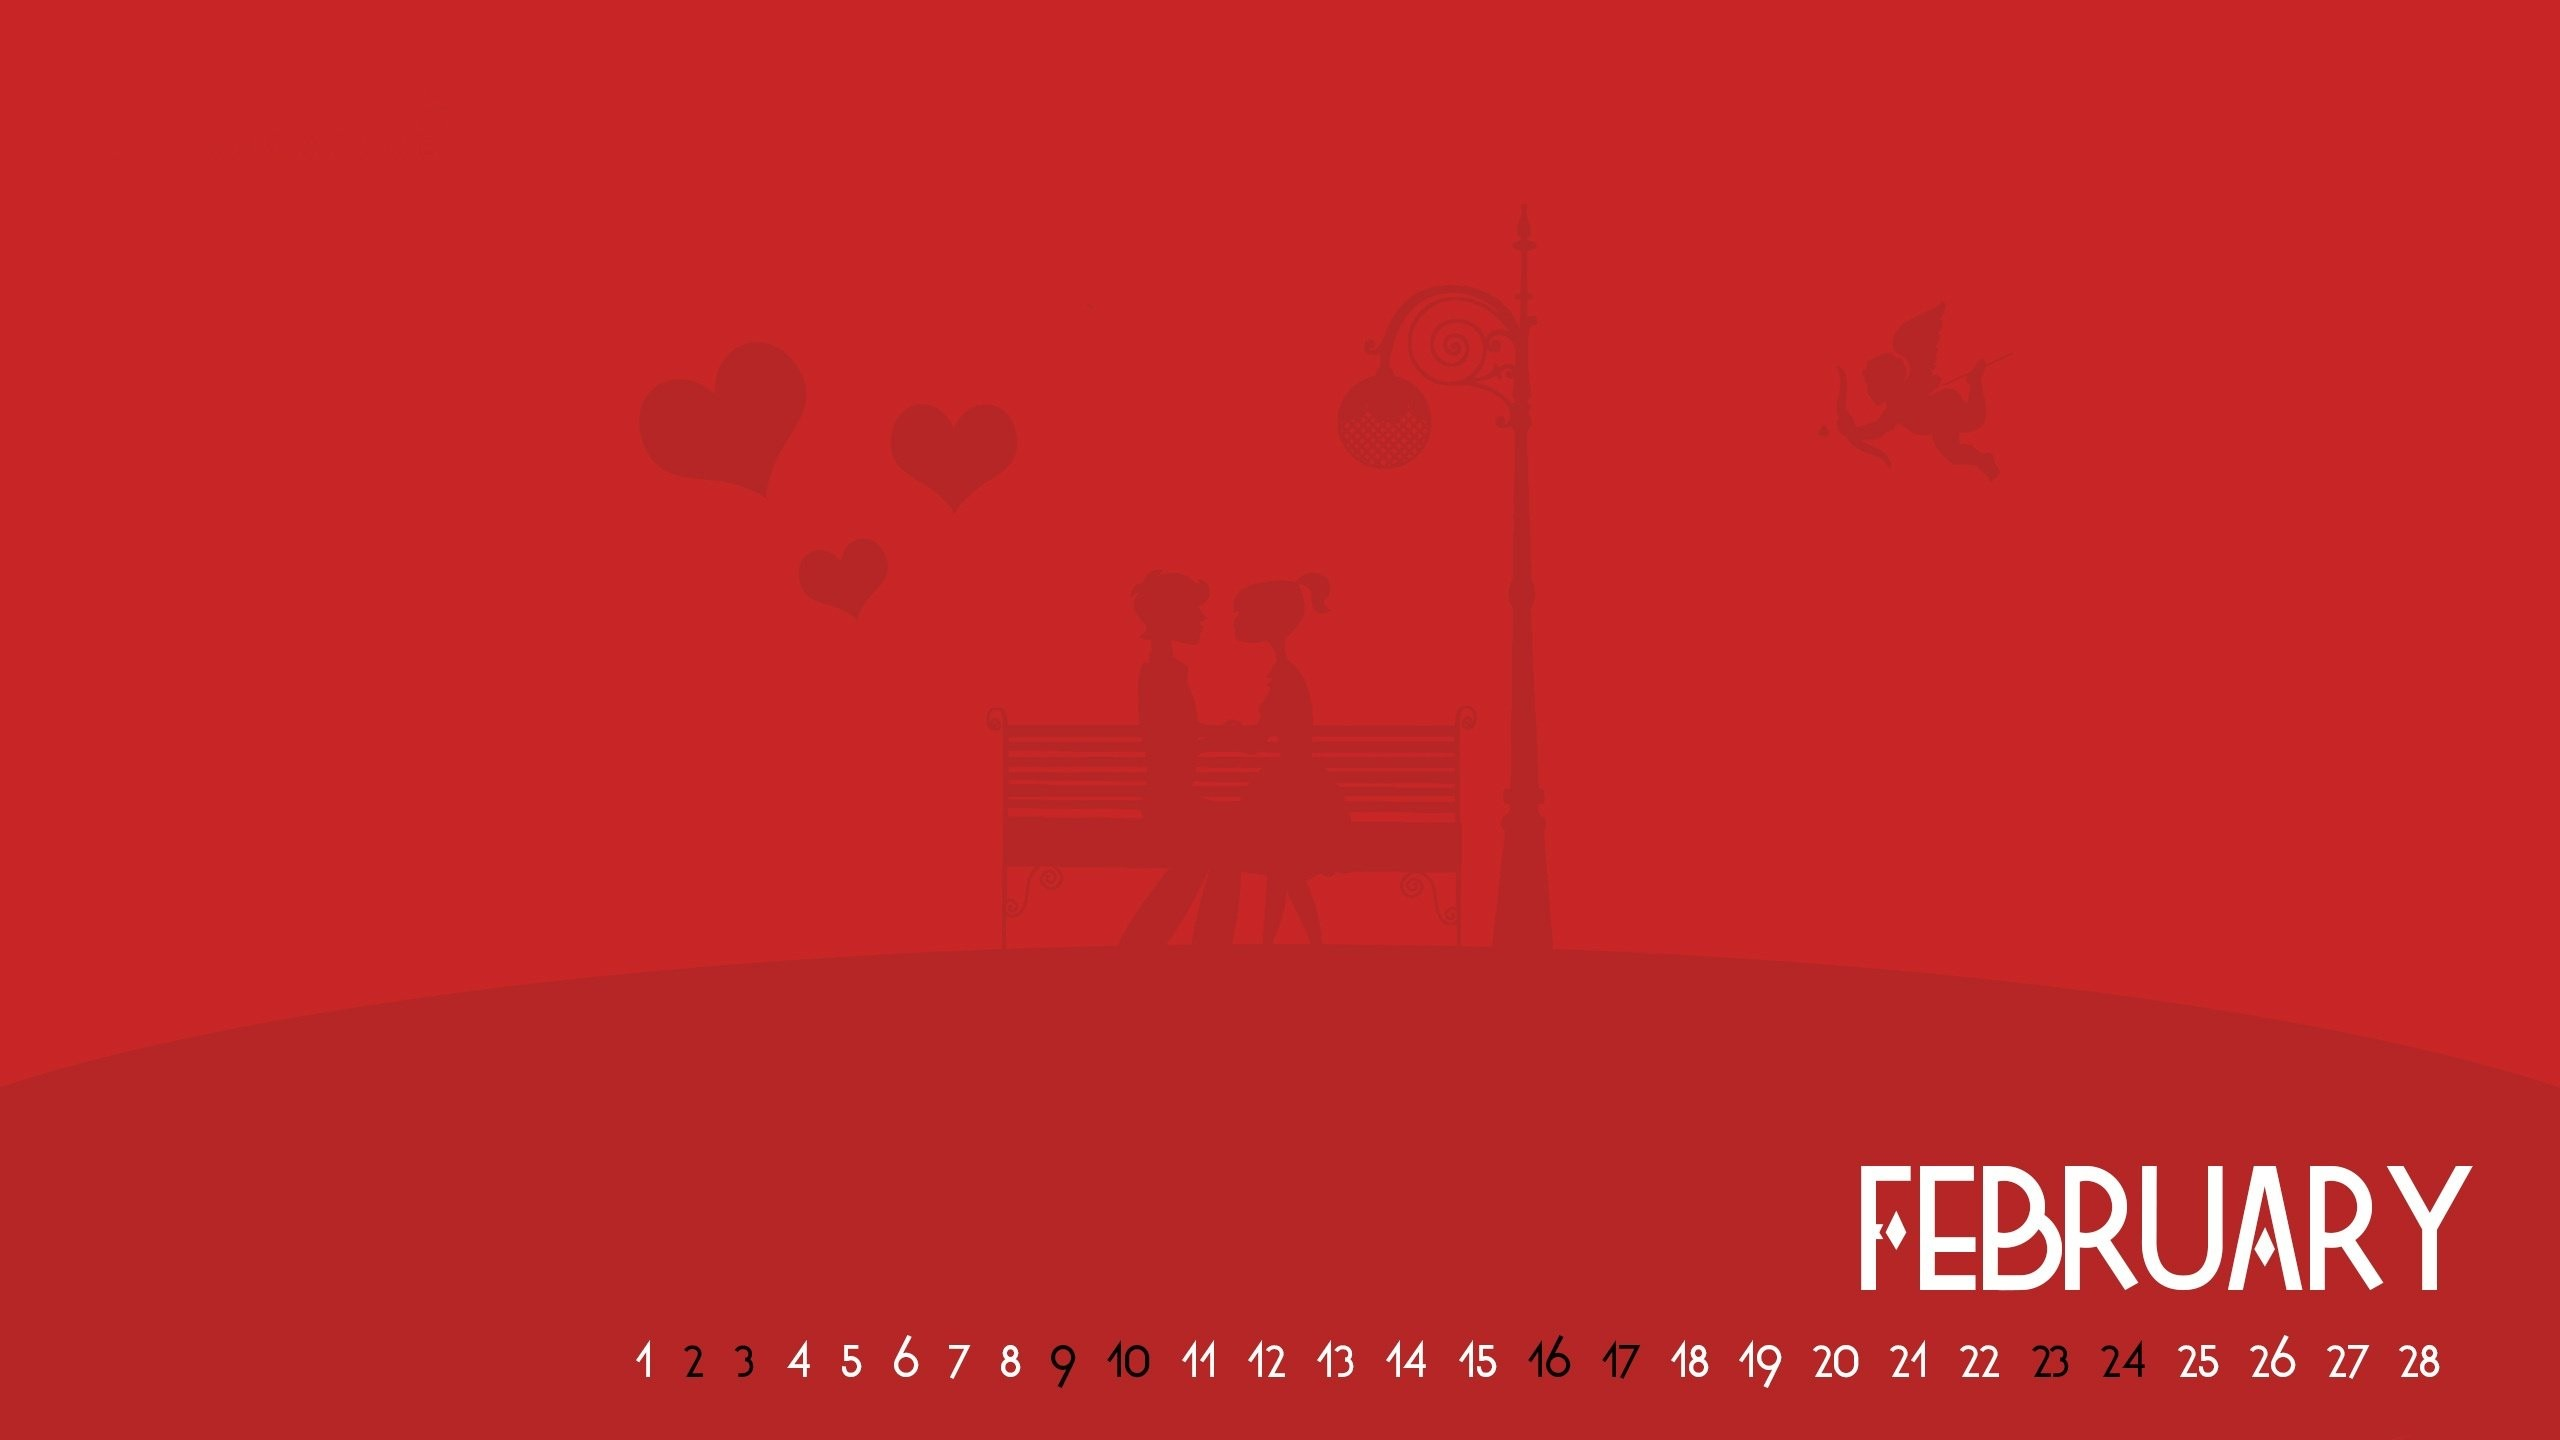 50 February Backgrounds Download Free Amazing Full HD